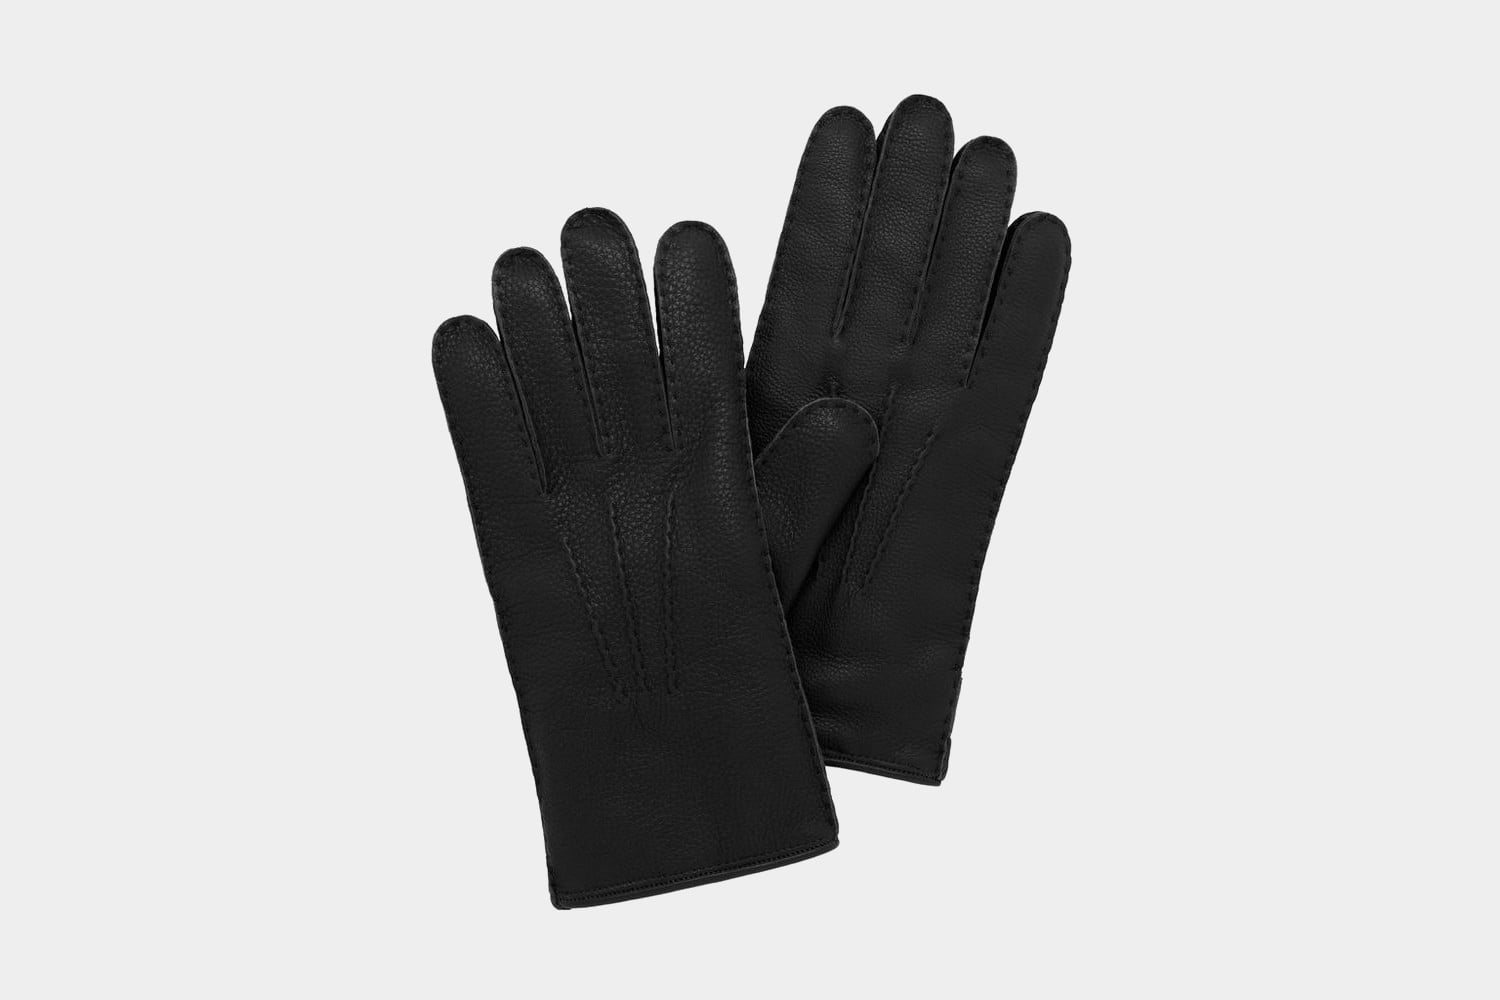 Driving gloves yahoo answers - Mulberry Day Glove Black Deerskin 380